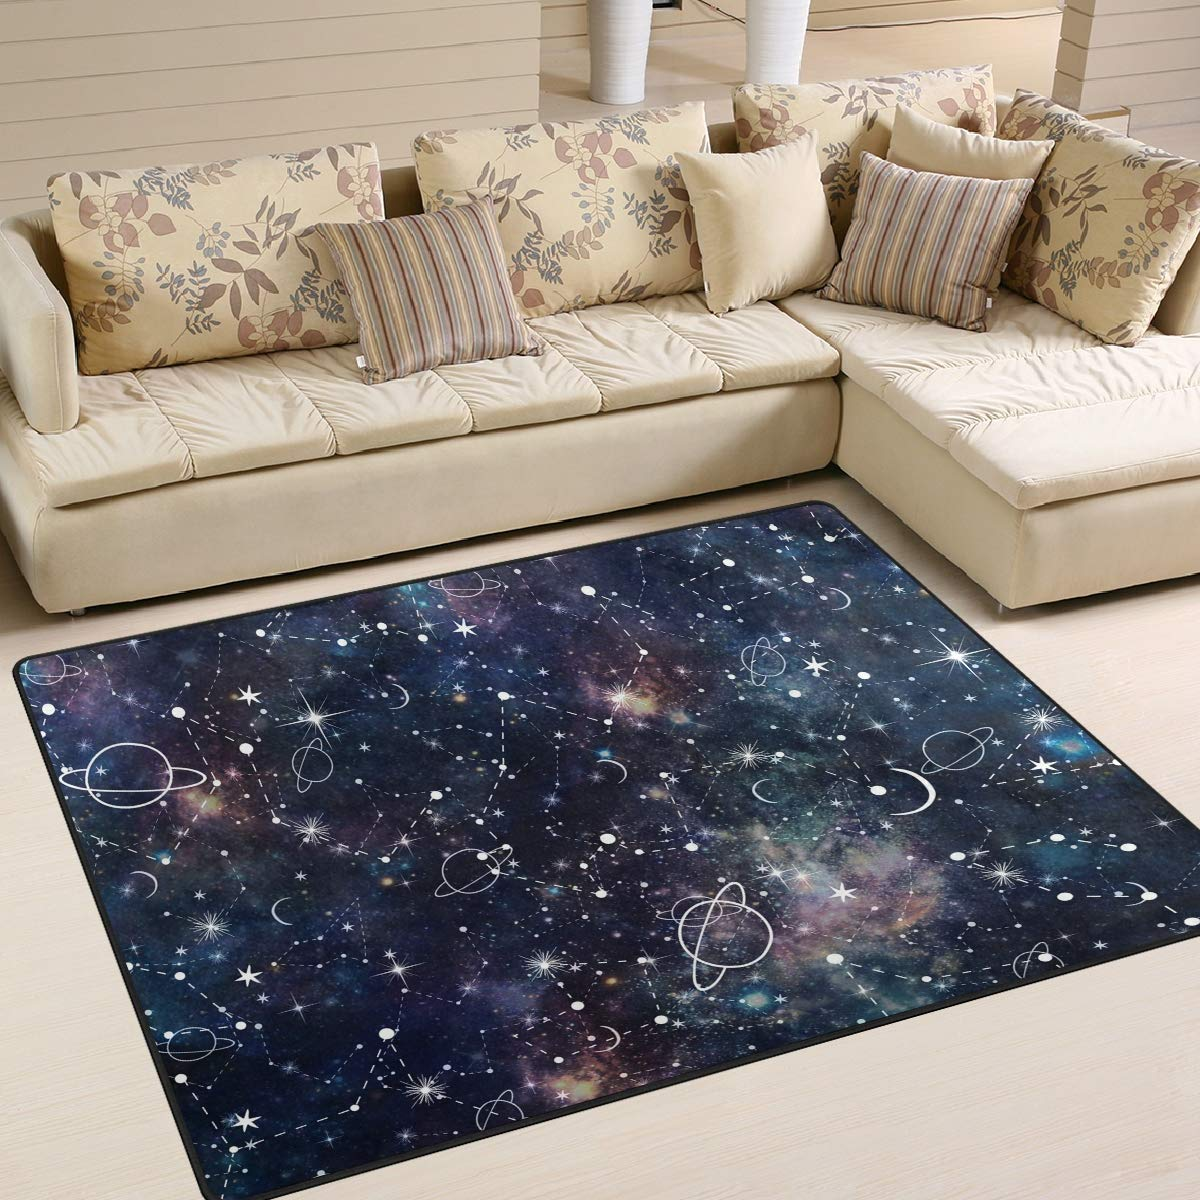 La Random Large Soft Rugs 63x48 Inches Night Planet Star Non-Skid Lightweight Nursery Yoga Rugs Play Mat for Kids Playing Room Living Room Bedroom Floor Mats